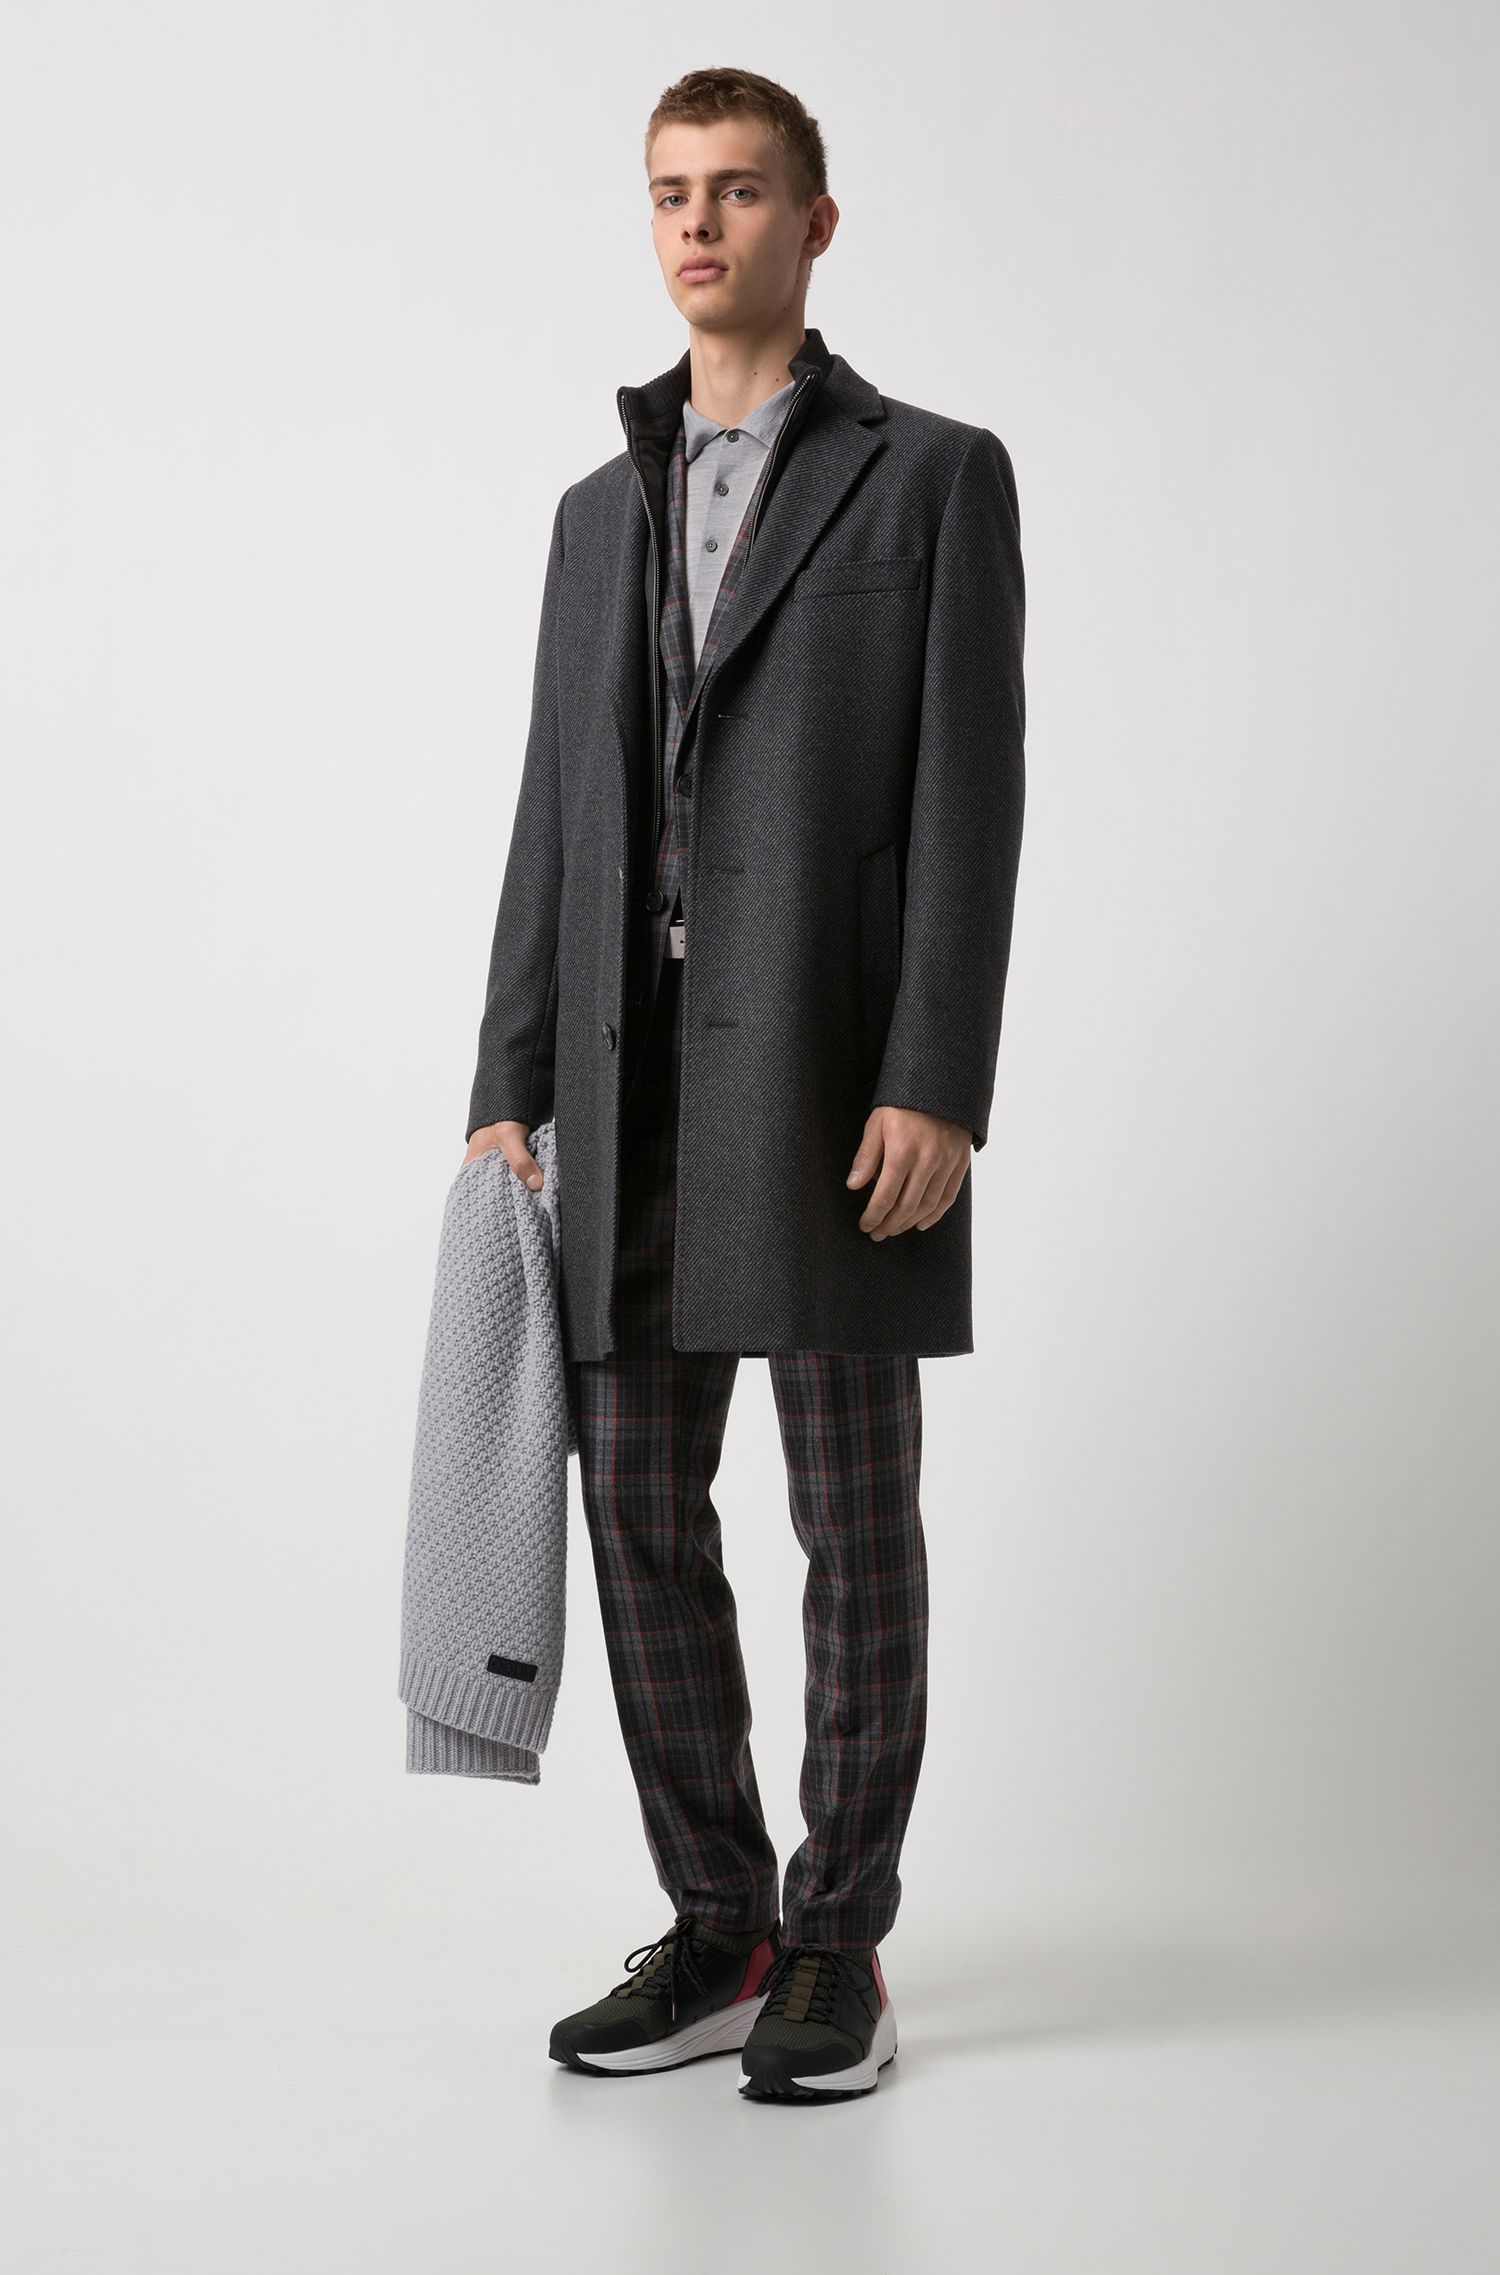 Wool-blend striped coat with detachable neck insert, Anthracite